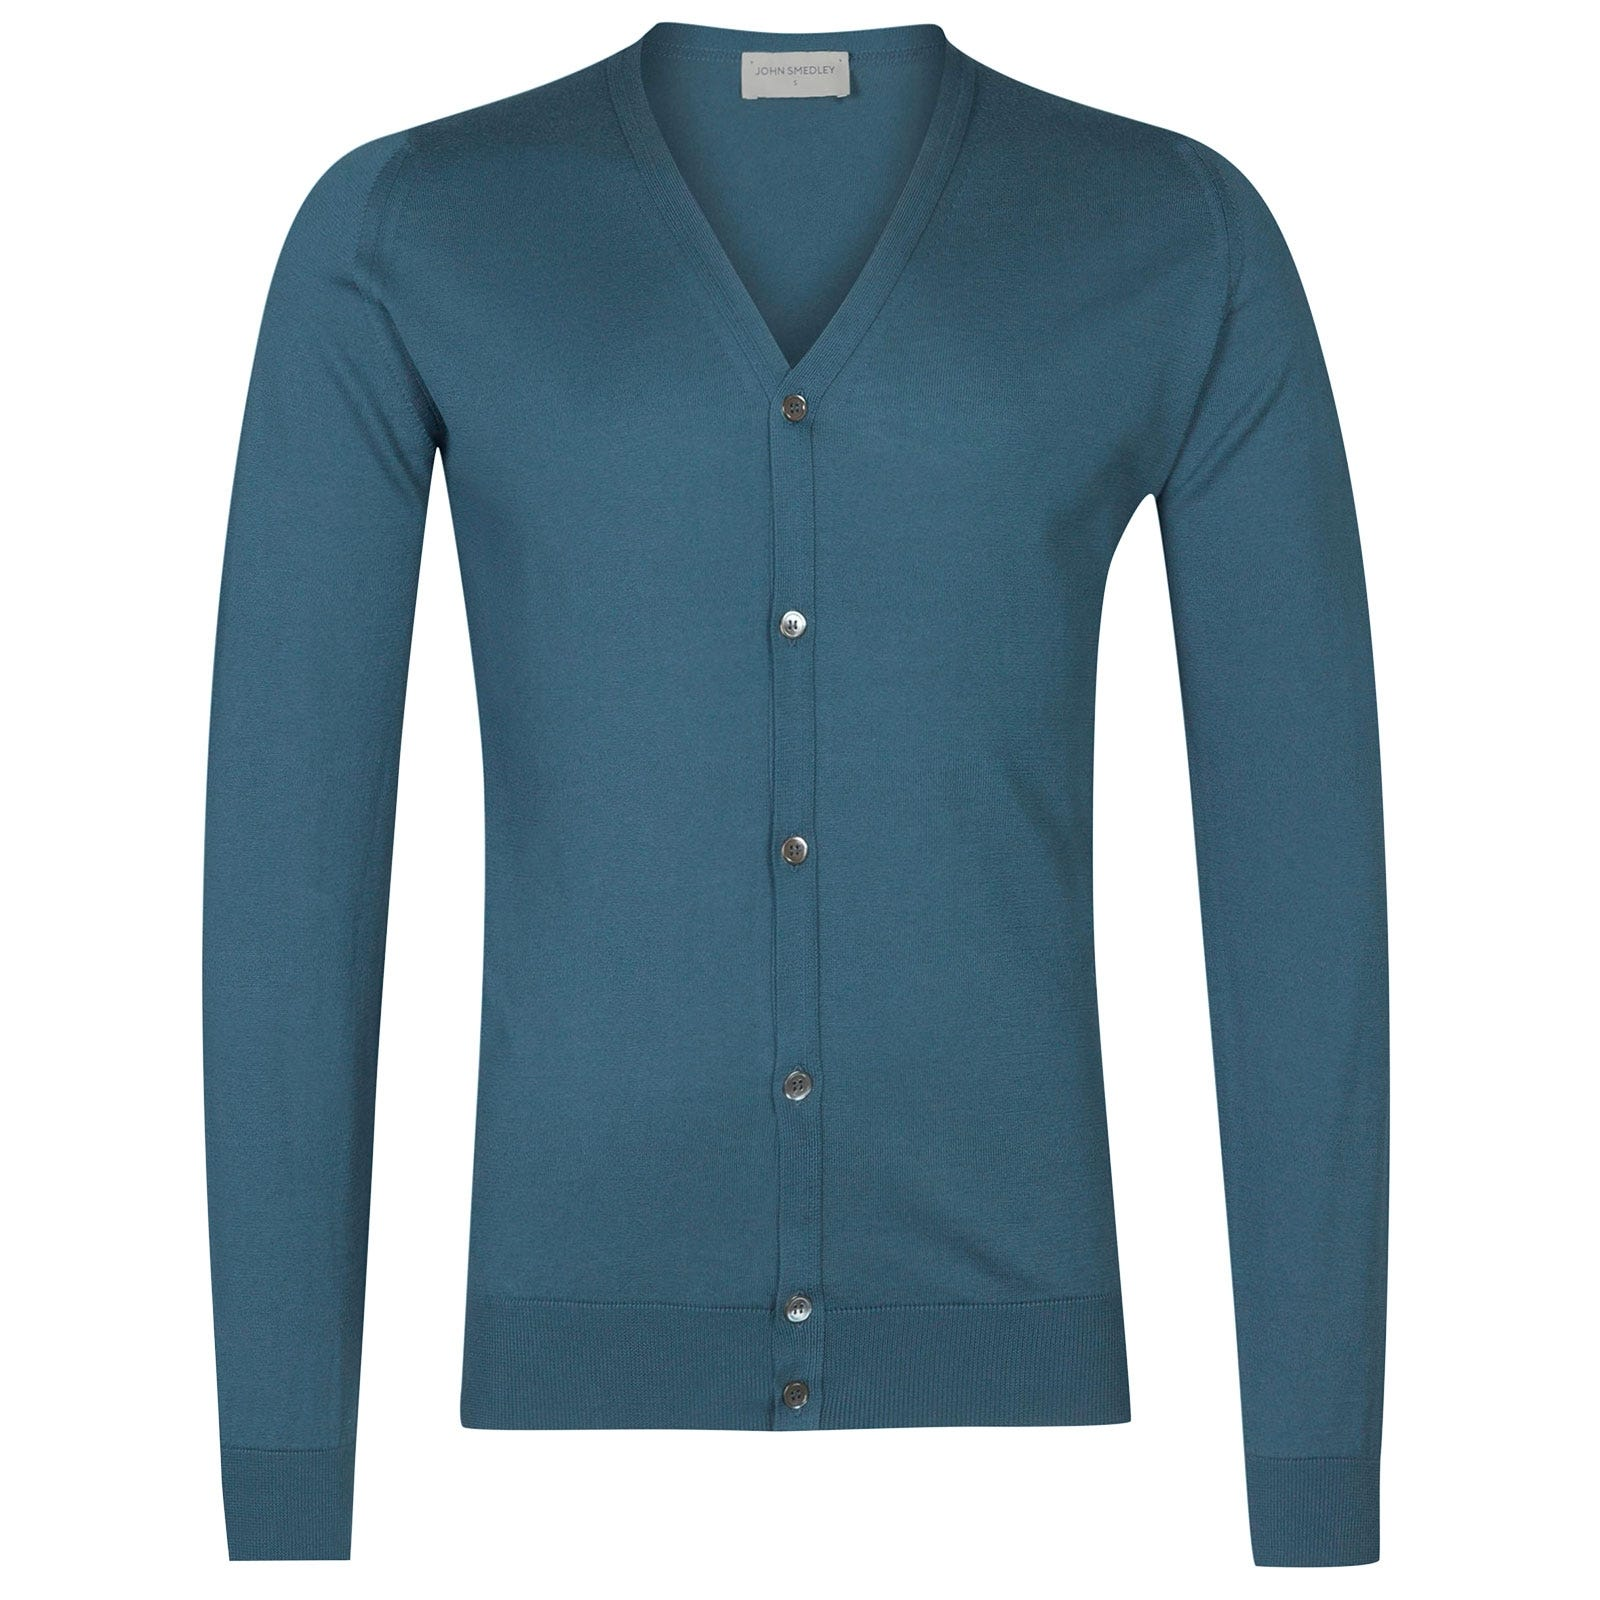 John Smedley Whitchurch Sea Island Cotton Cardigan in Bias Blue-S